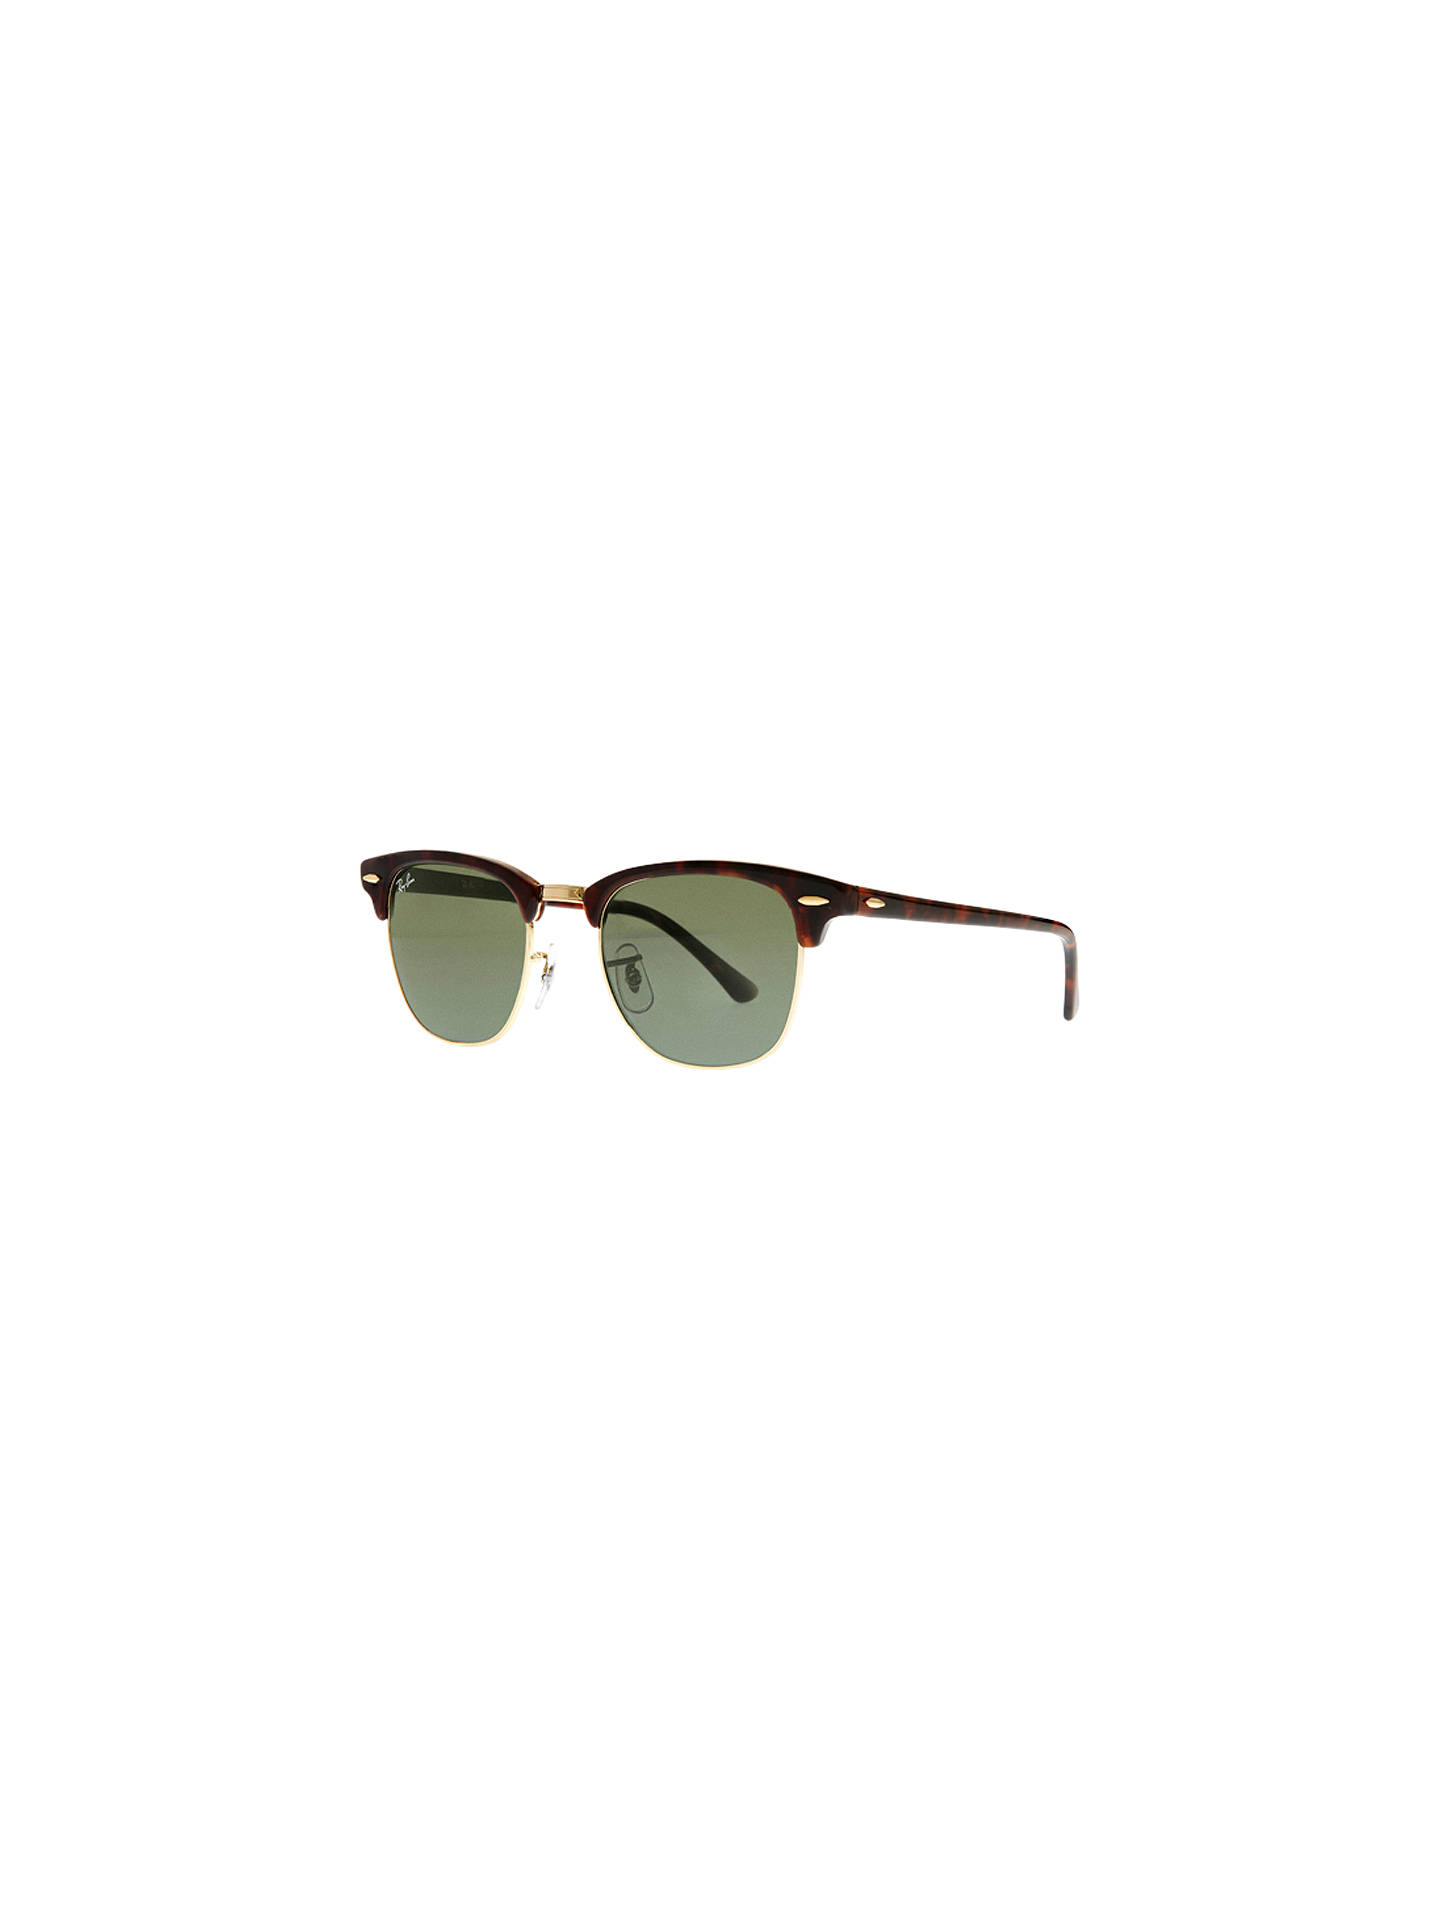 b9effdbcf6d Ray-Ban RB3016 Men s Classic Clubmaster Sunglasses at John Lewis ...